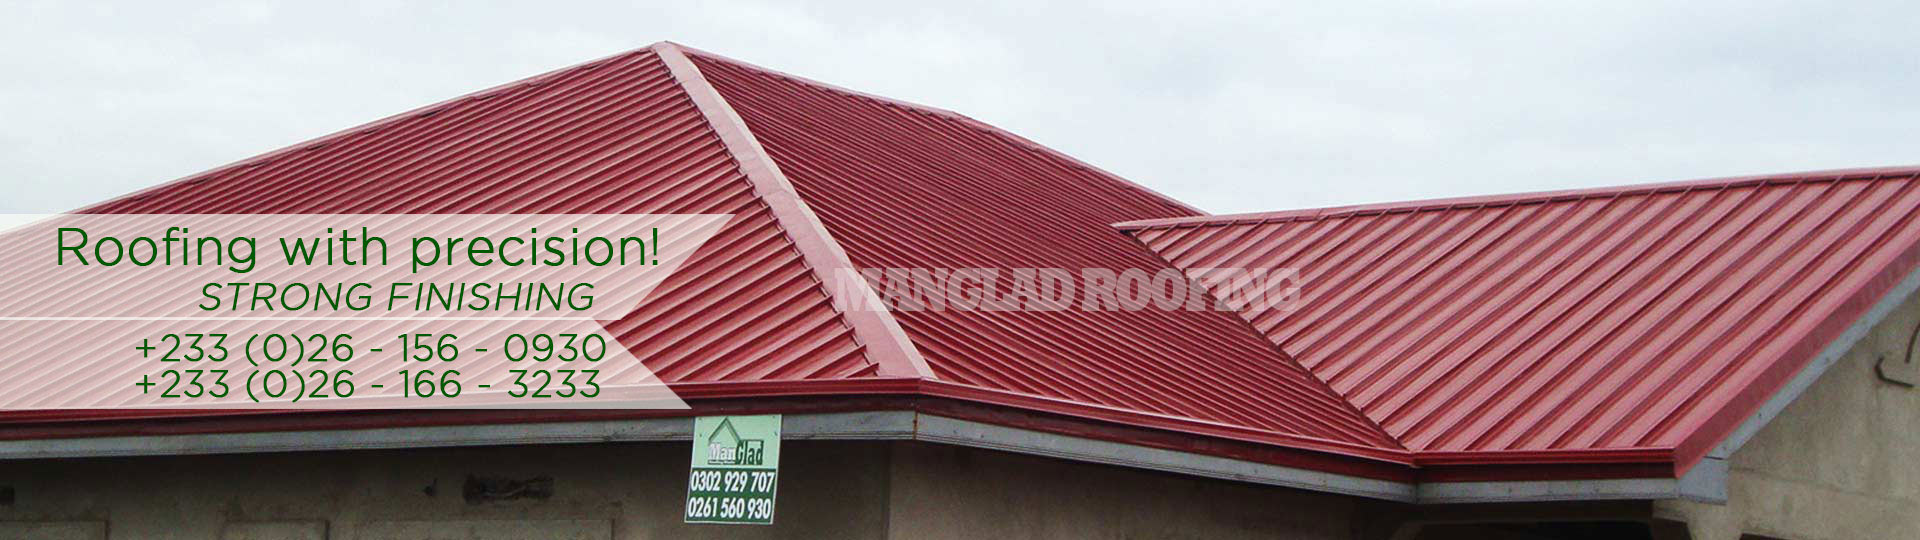 manglad_roofing_systems_ghana2